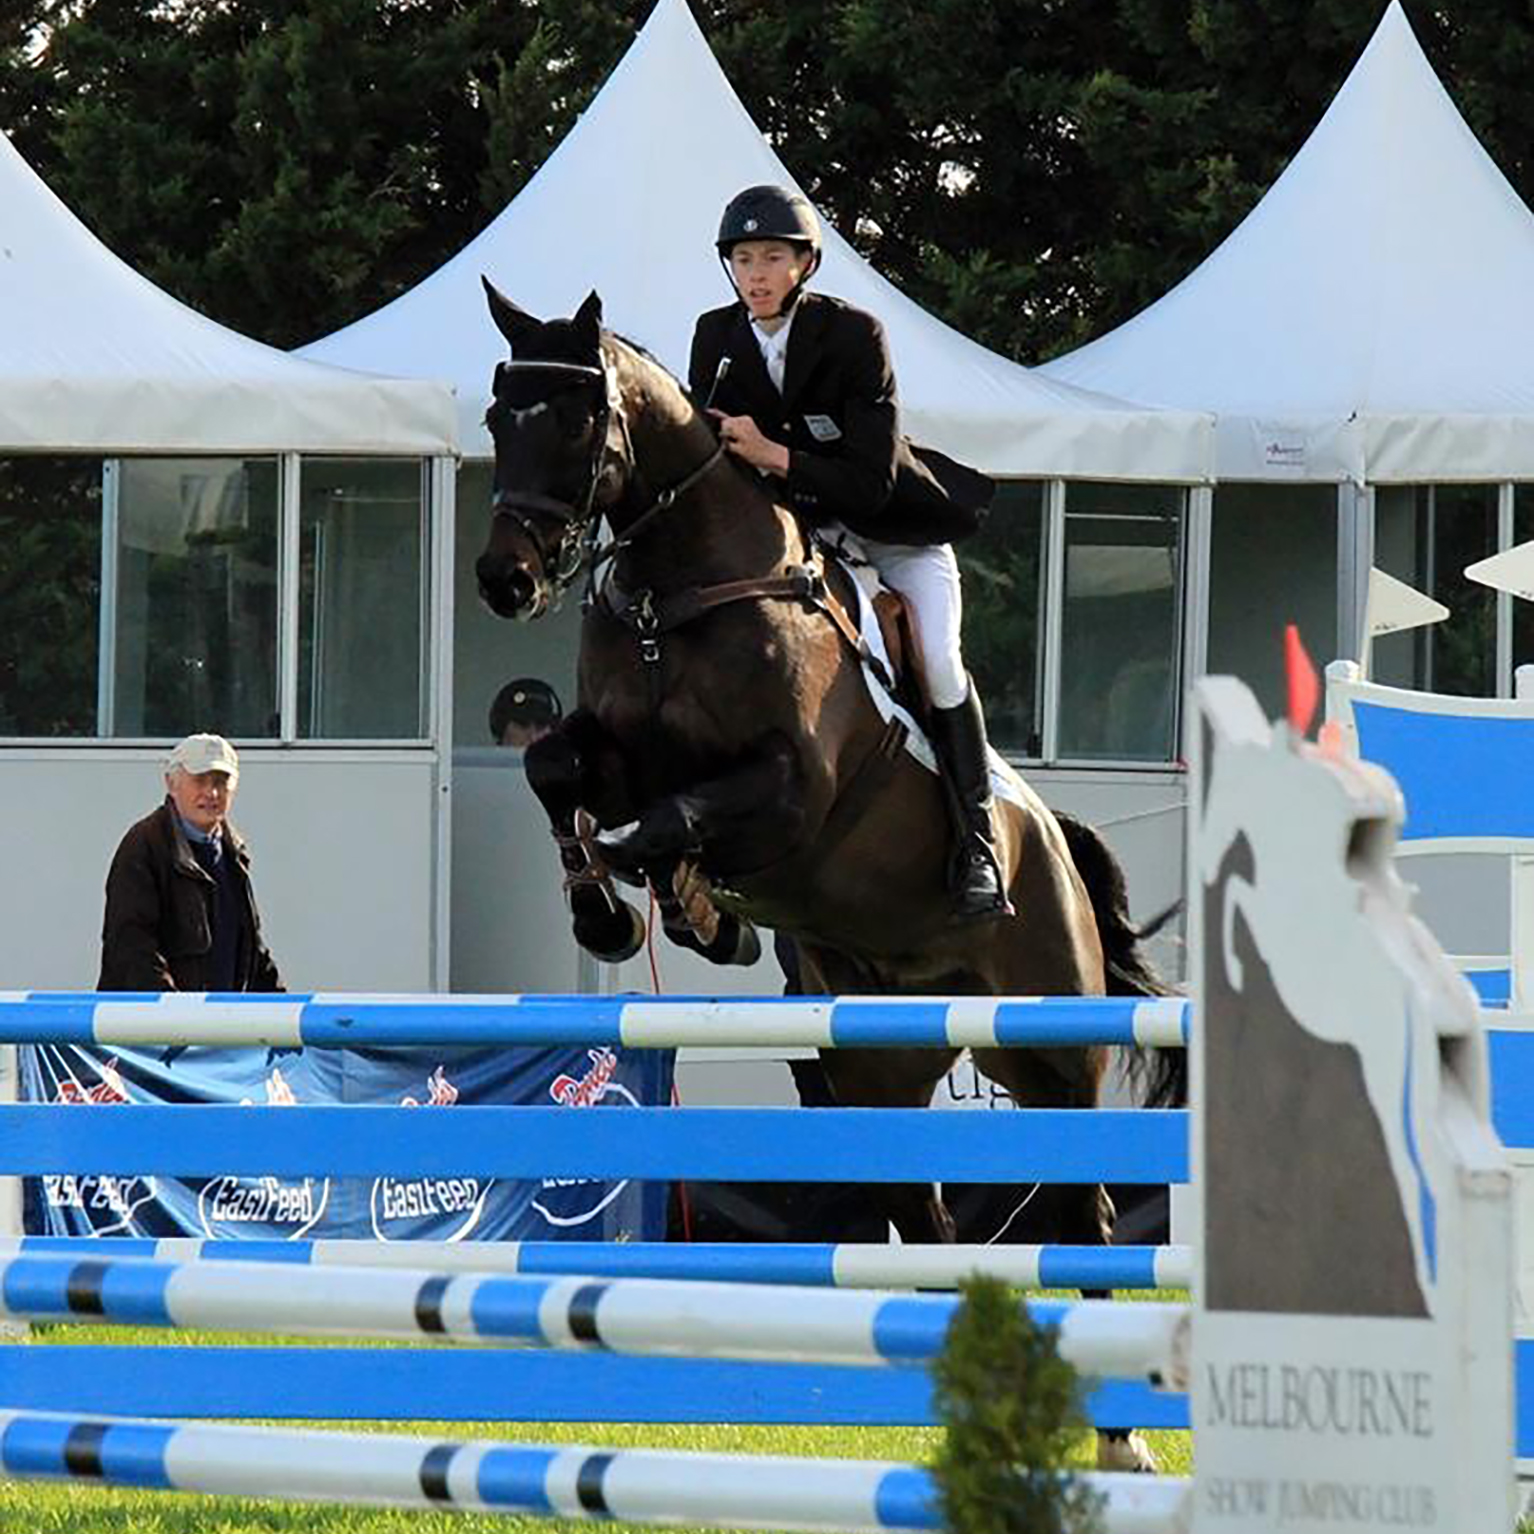 Sam Jeffree riding Jaybee Calypso show-jumping at Melbourne International Three Day Event